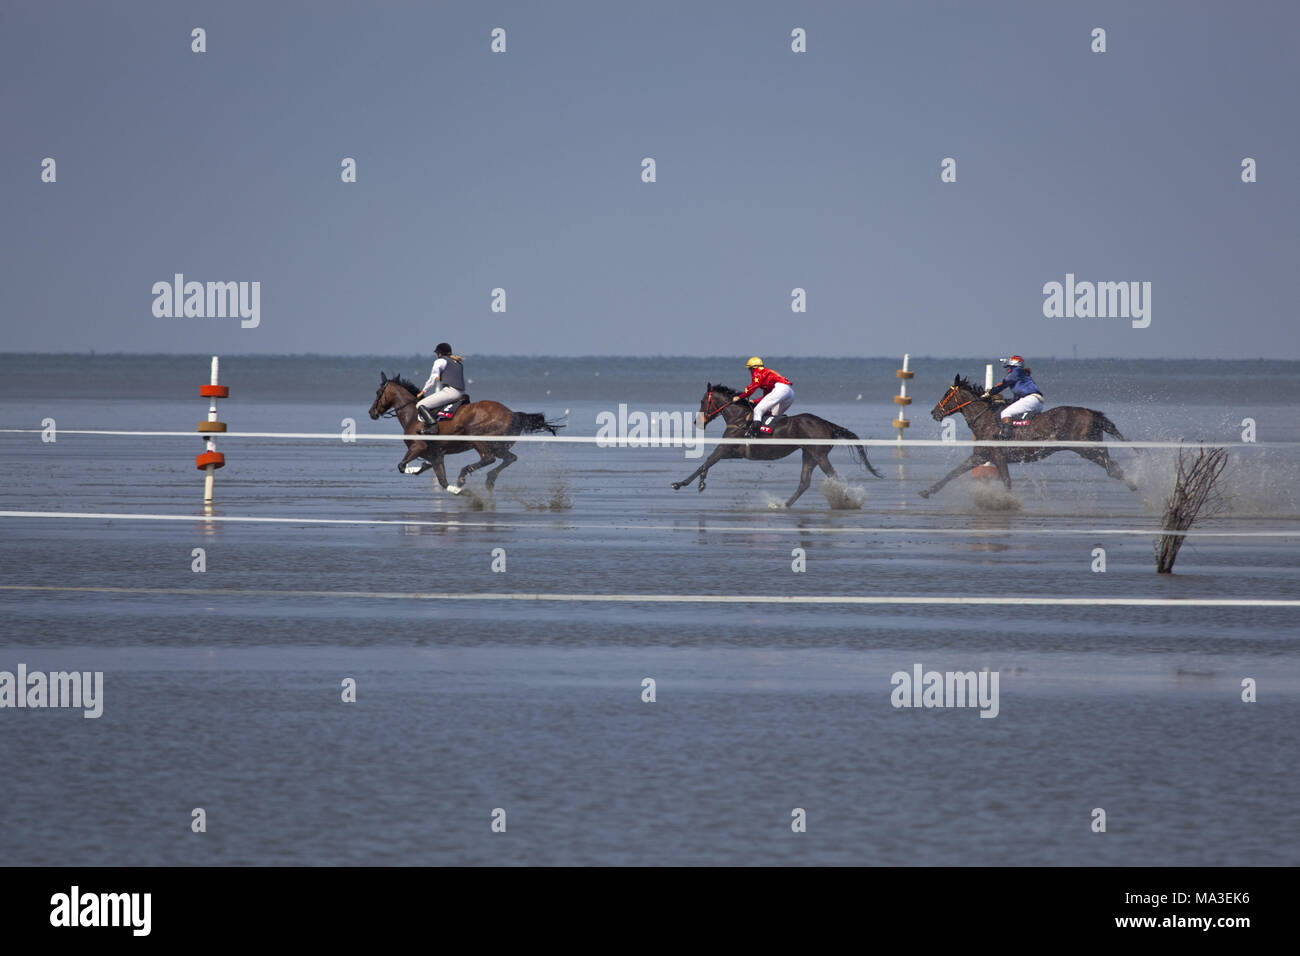 Duhner mudflat races, Duhnen, Cuxhaven, Lower Saxony, Germany, Europe, - Stock Image